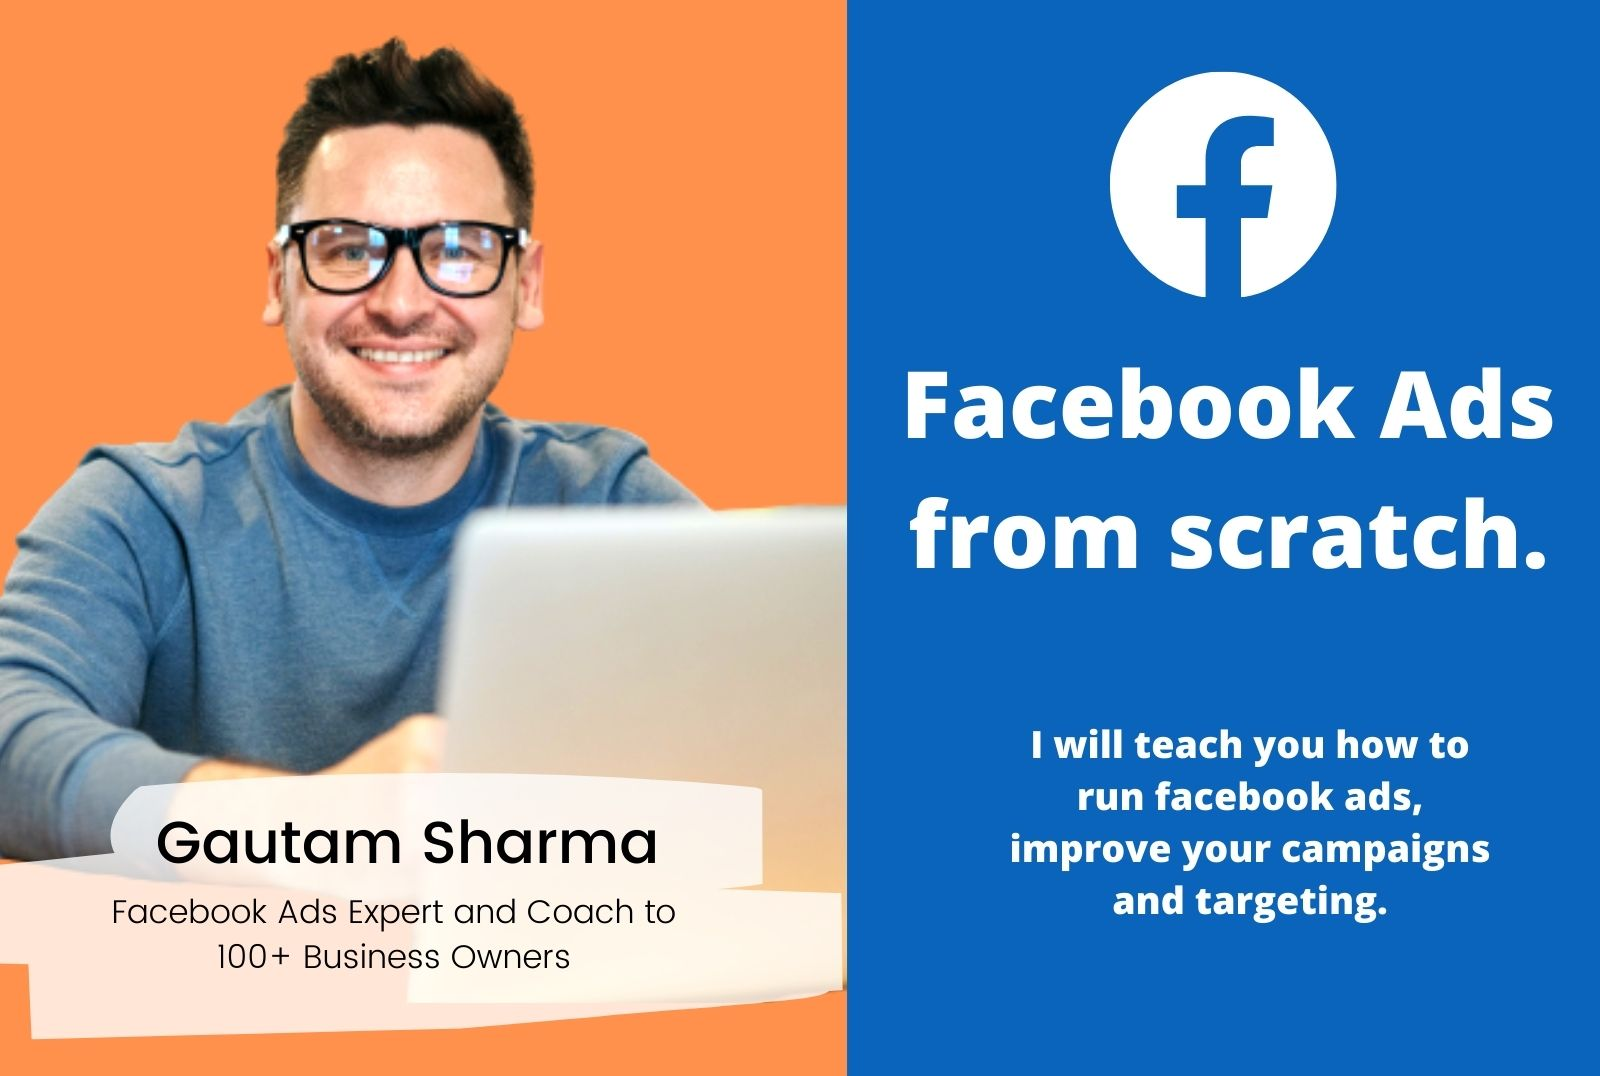 I will bring maximum results from Facebook Ads and Optimise the Campaigns